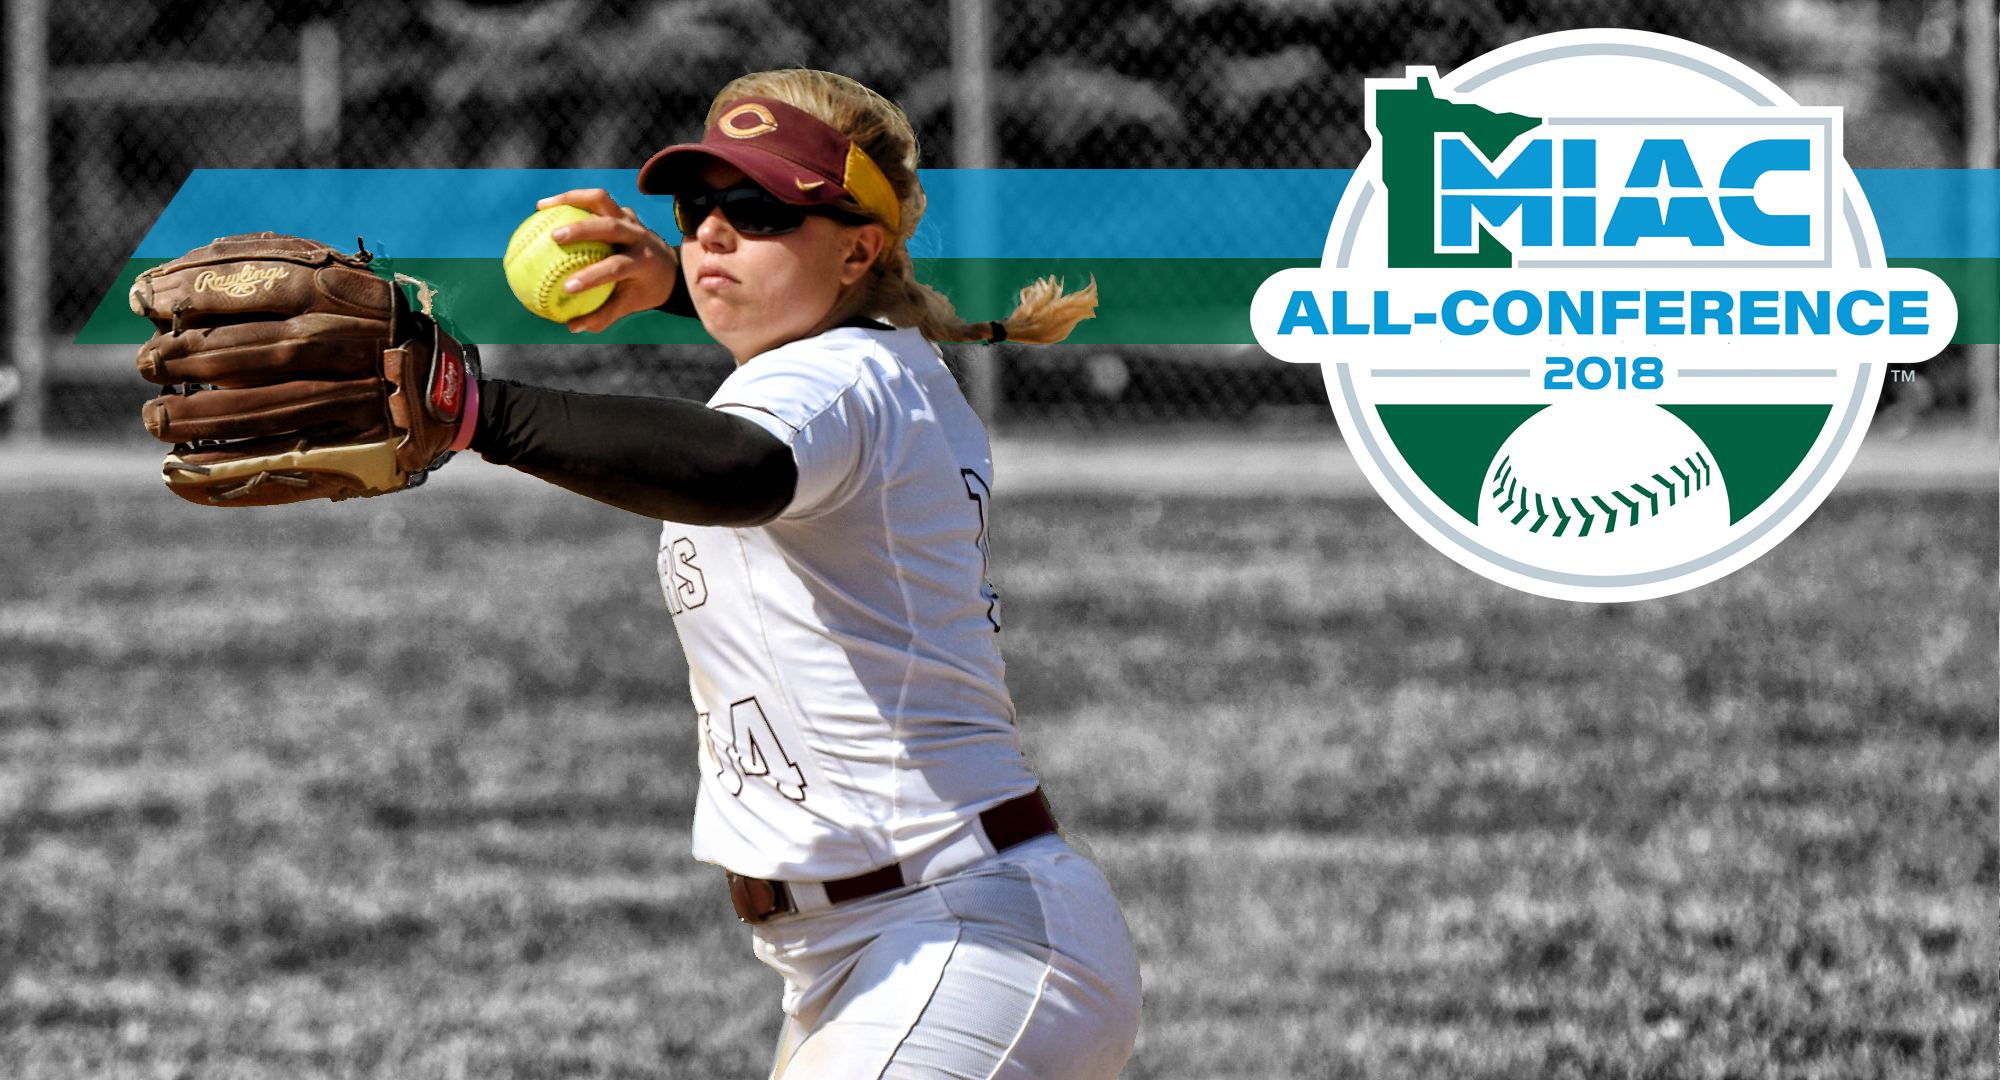 Sophomore Brooke Ankerfelt was named to the MIAC All-Conference Team after leading the team in hitting in league games.